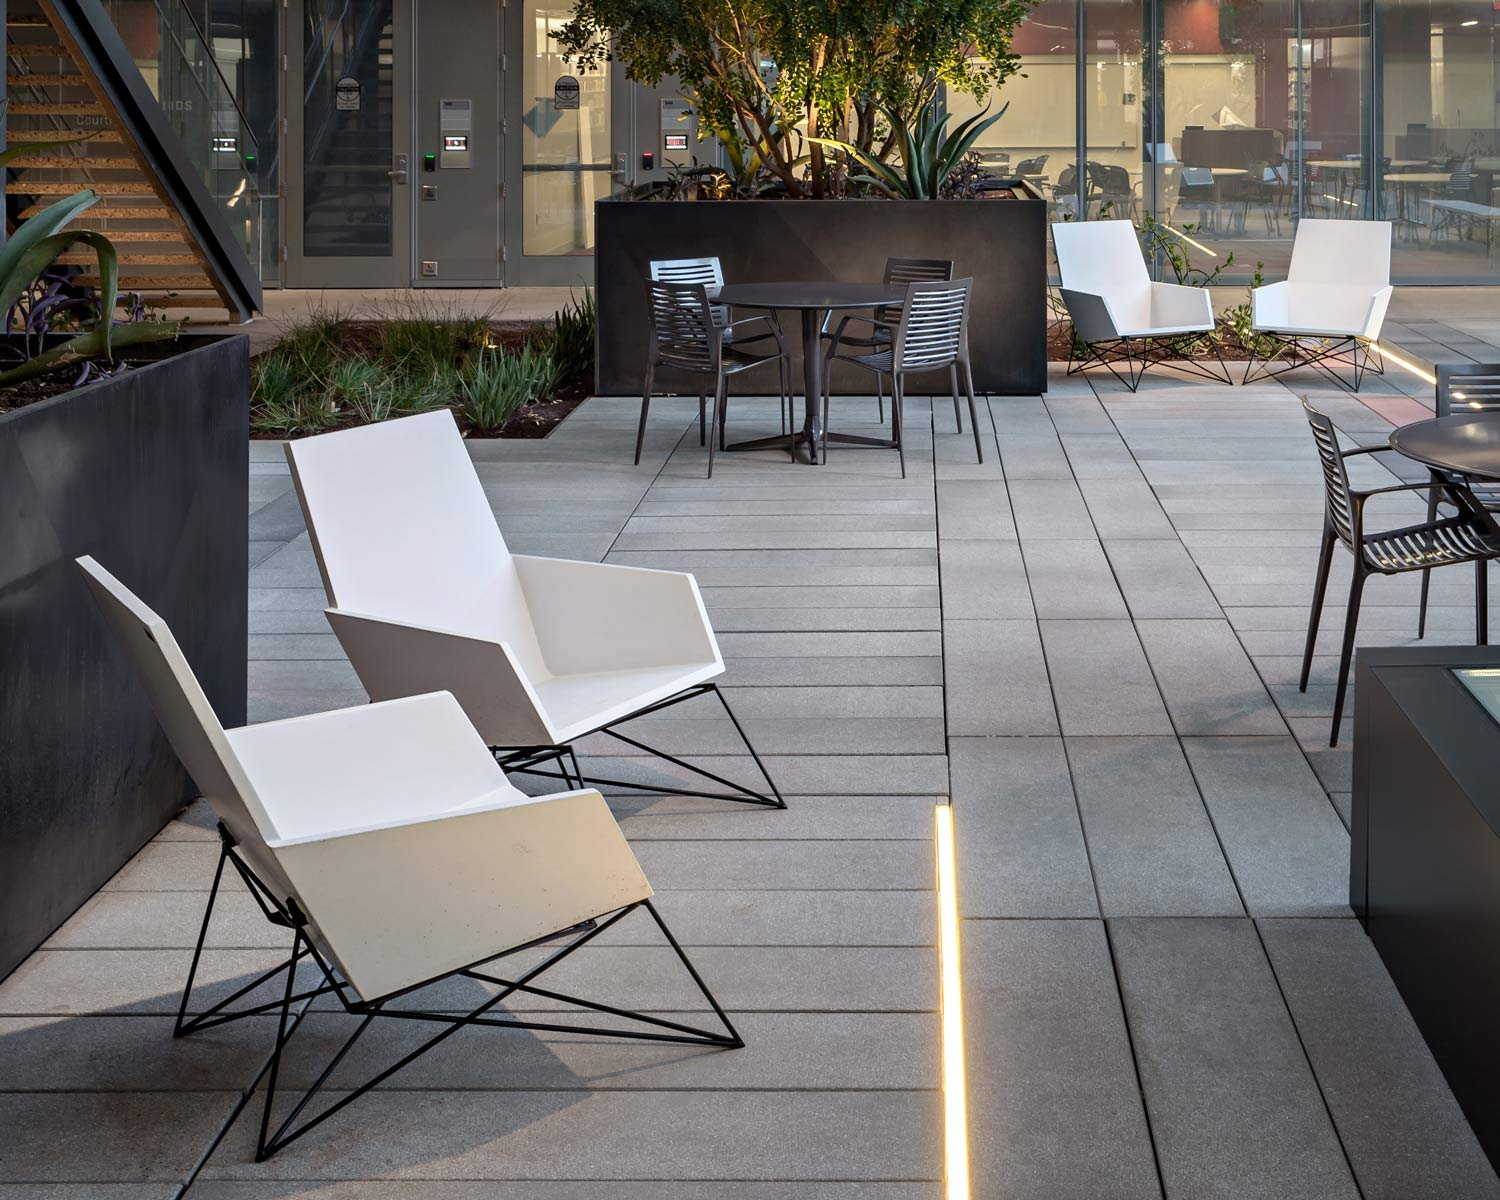 Concrete + Steel Modern Muskoka Outdoor Chairs and faceted black GFRC concrete wall cladding panels